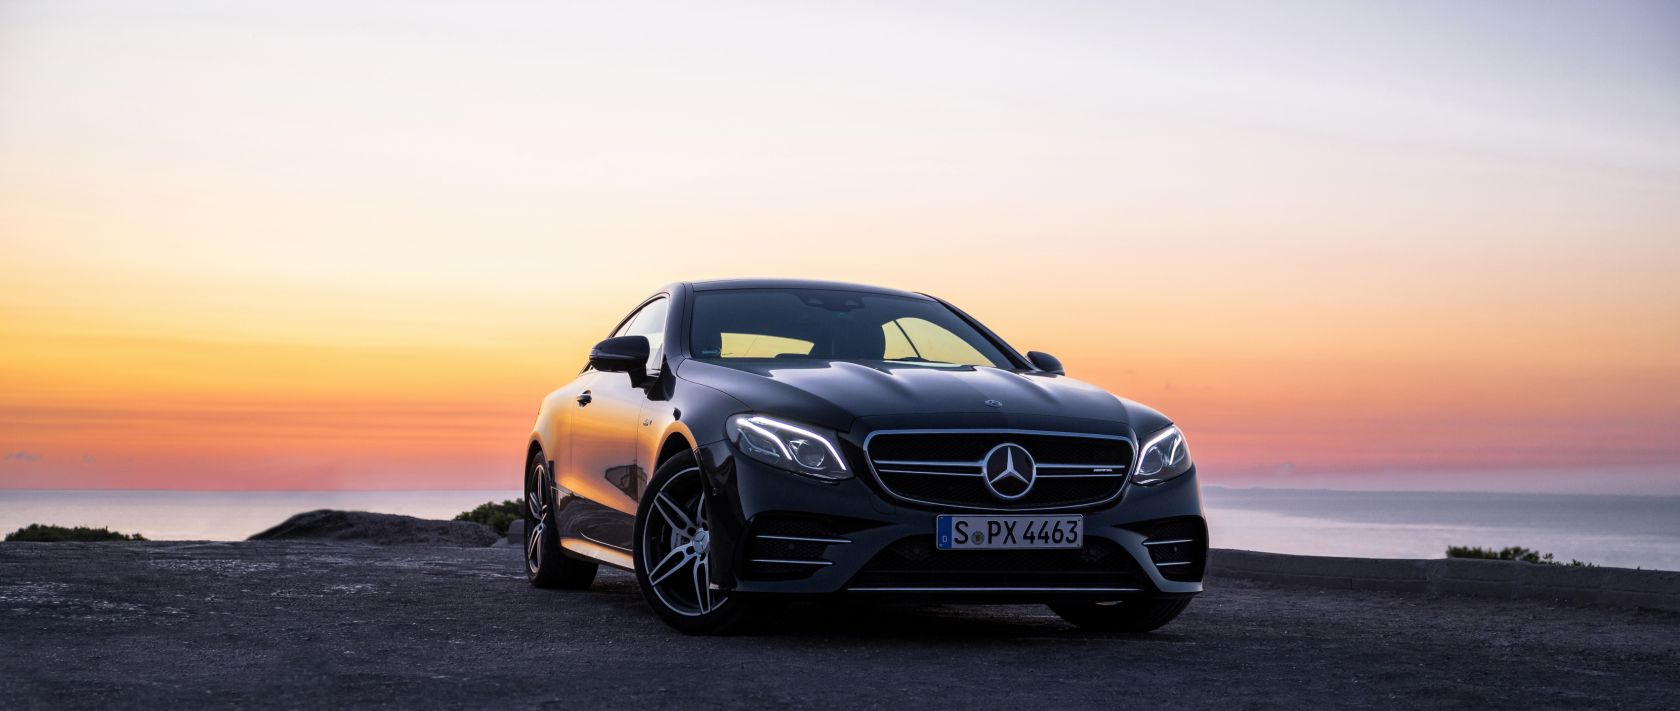 The Mercedes-AMG E 53 4MATIC+ Coupé (C 238) in black in front of a sunset.